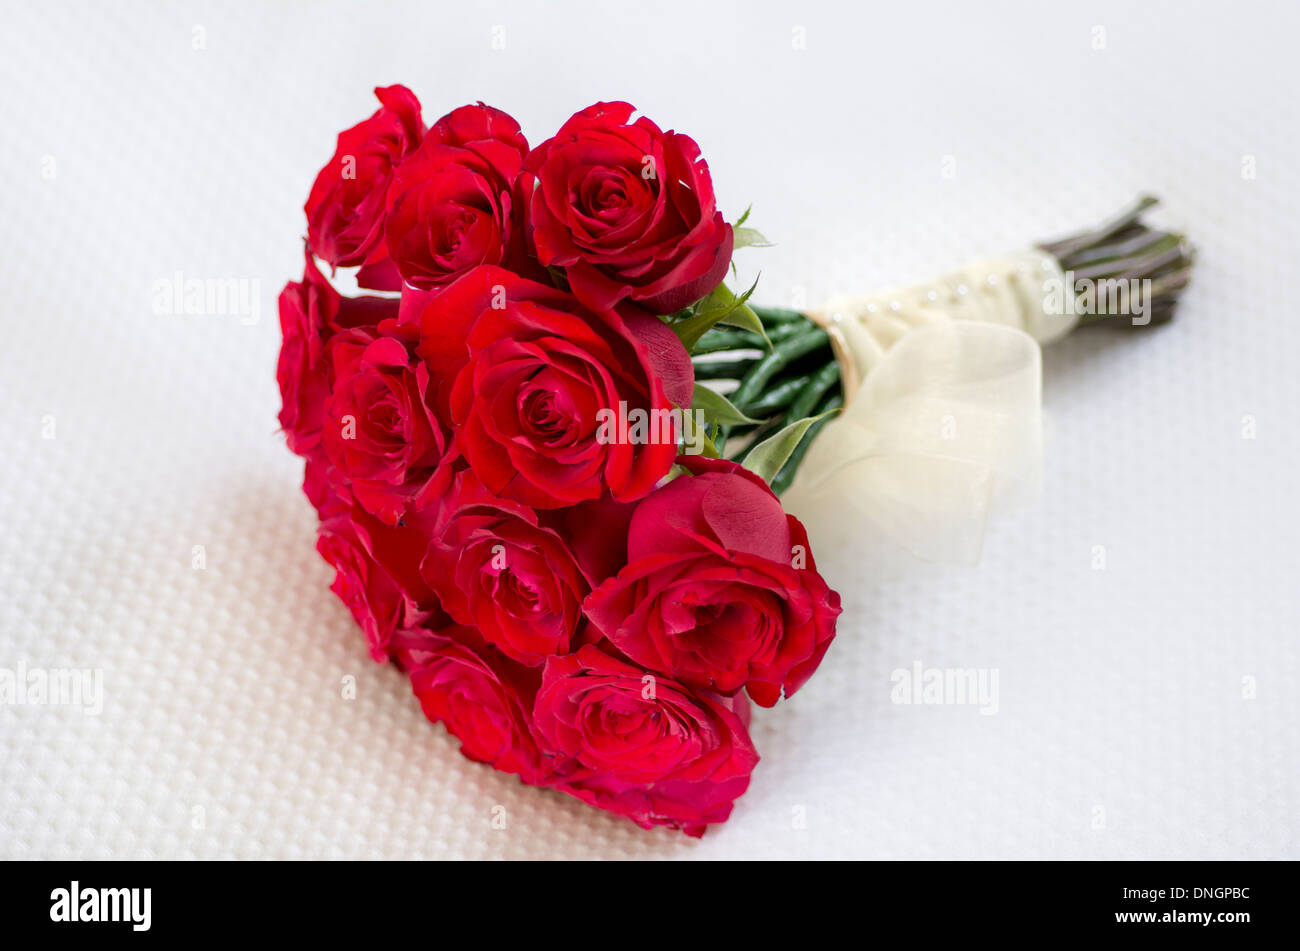 Red roses bridal bouquets Wedding bouquet on white background close ...